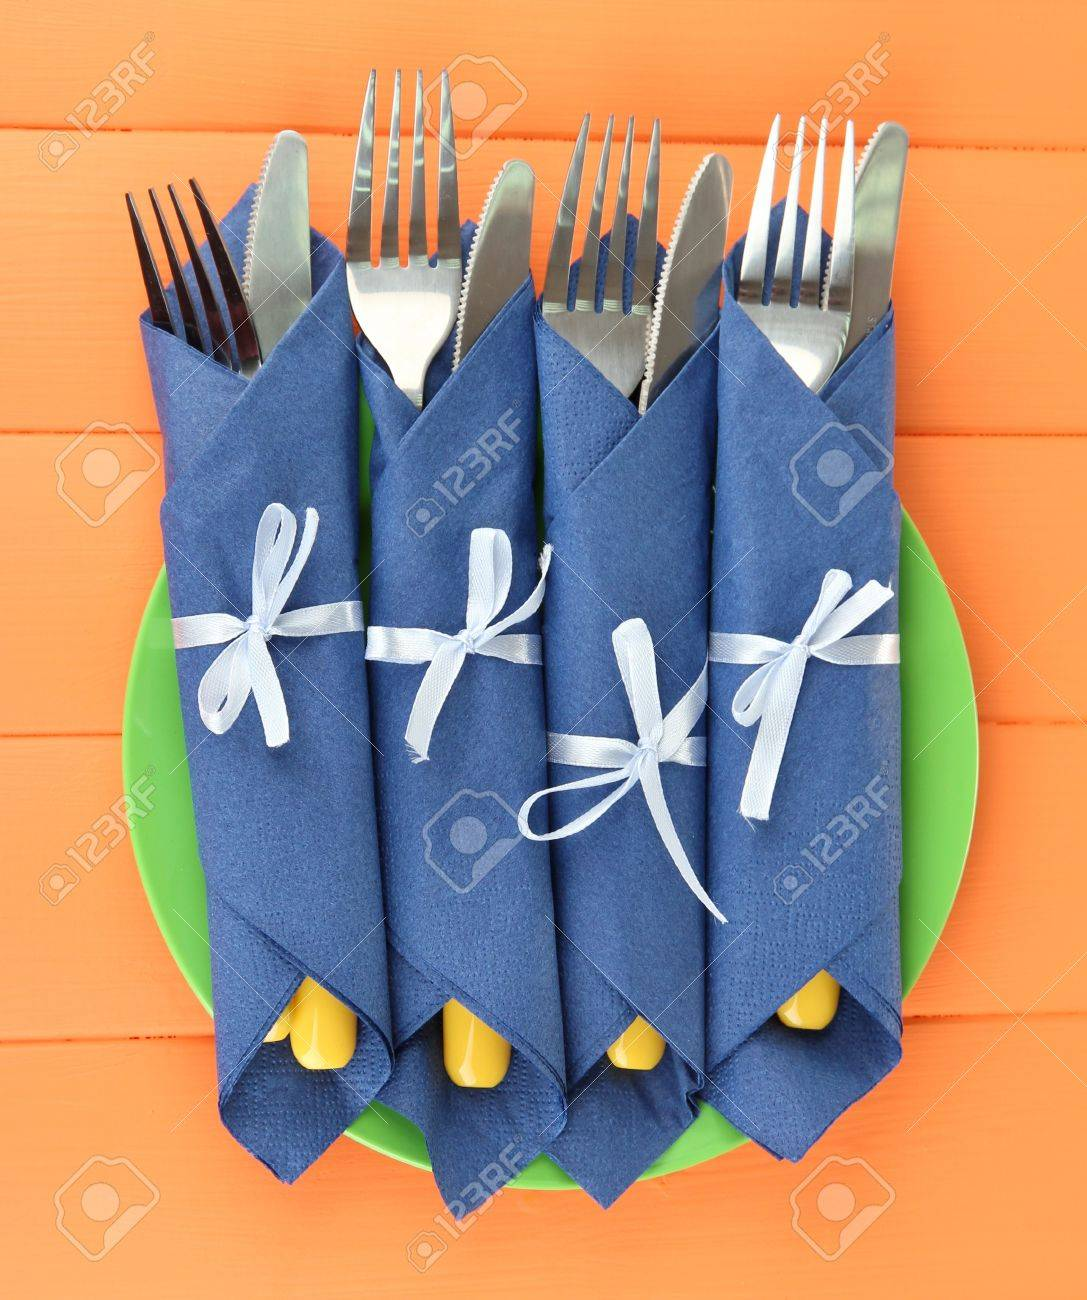 Forks And Knives Wrapped In Blue Paper Napkins On Color Wooden Stock Photo Picture And Royalty Free Image Image 19174589